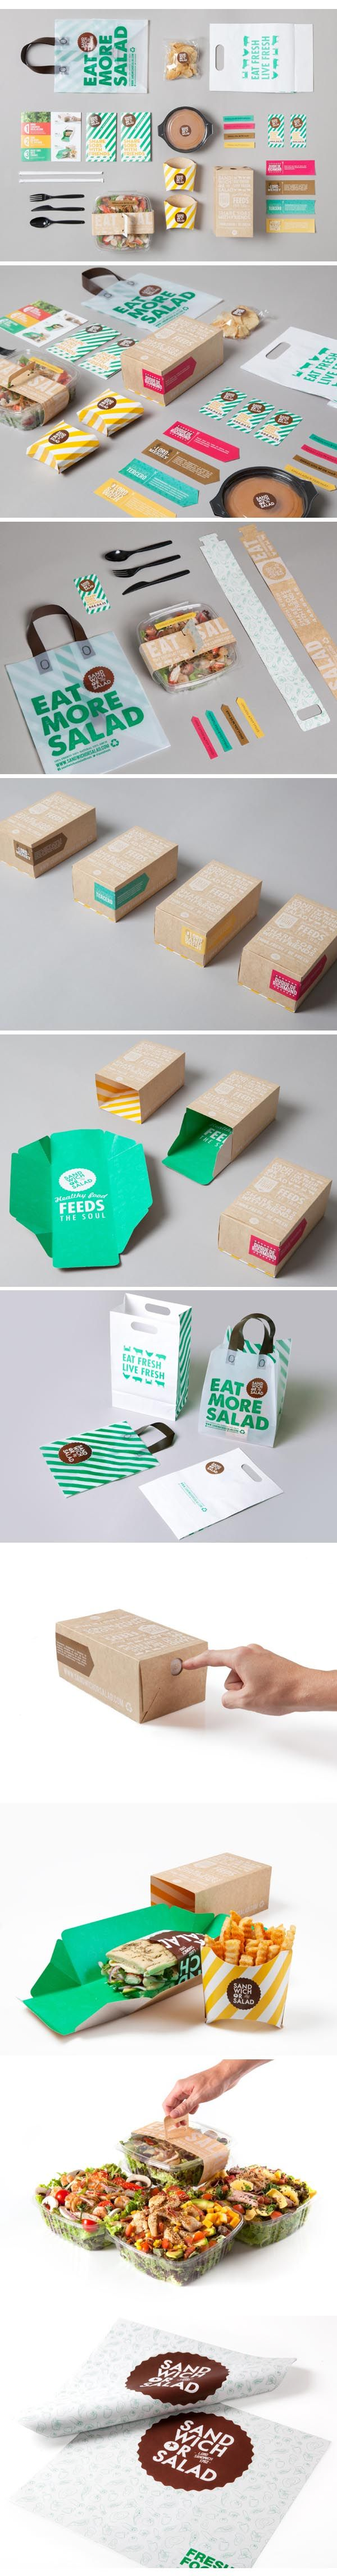 Sandwich or Salad by Masif #branding U gotta just love it